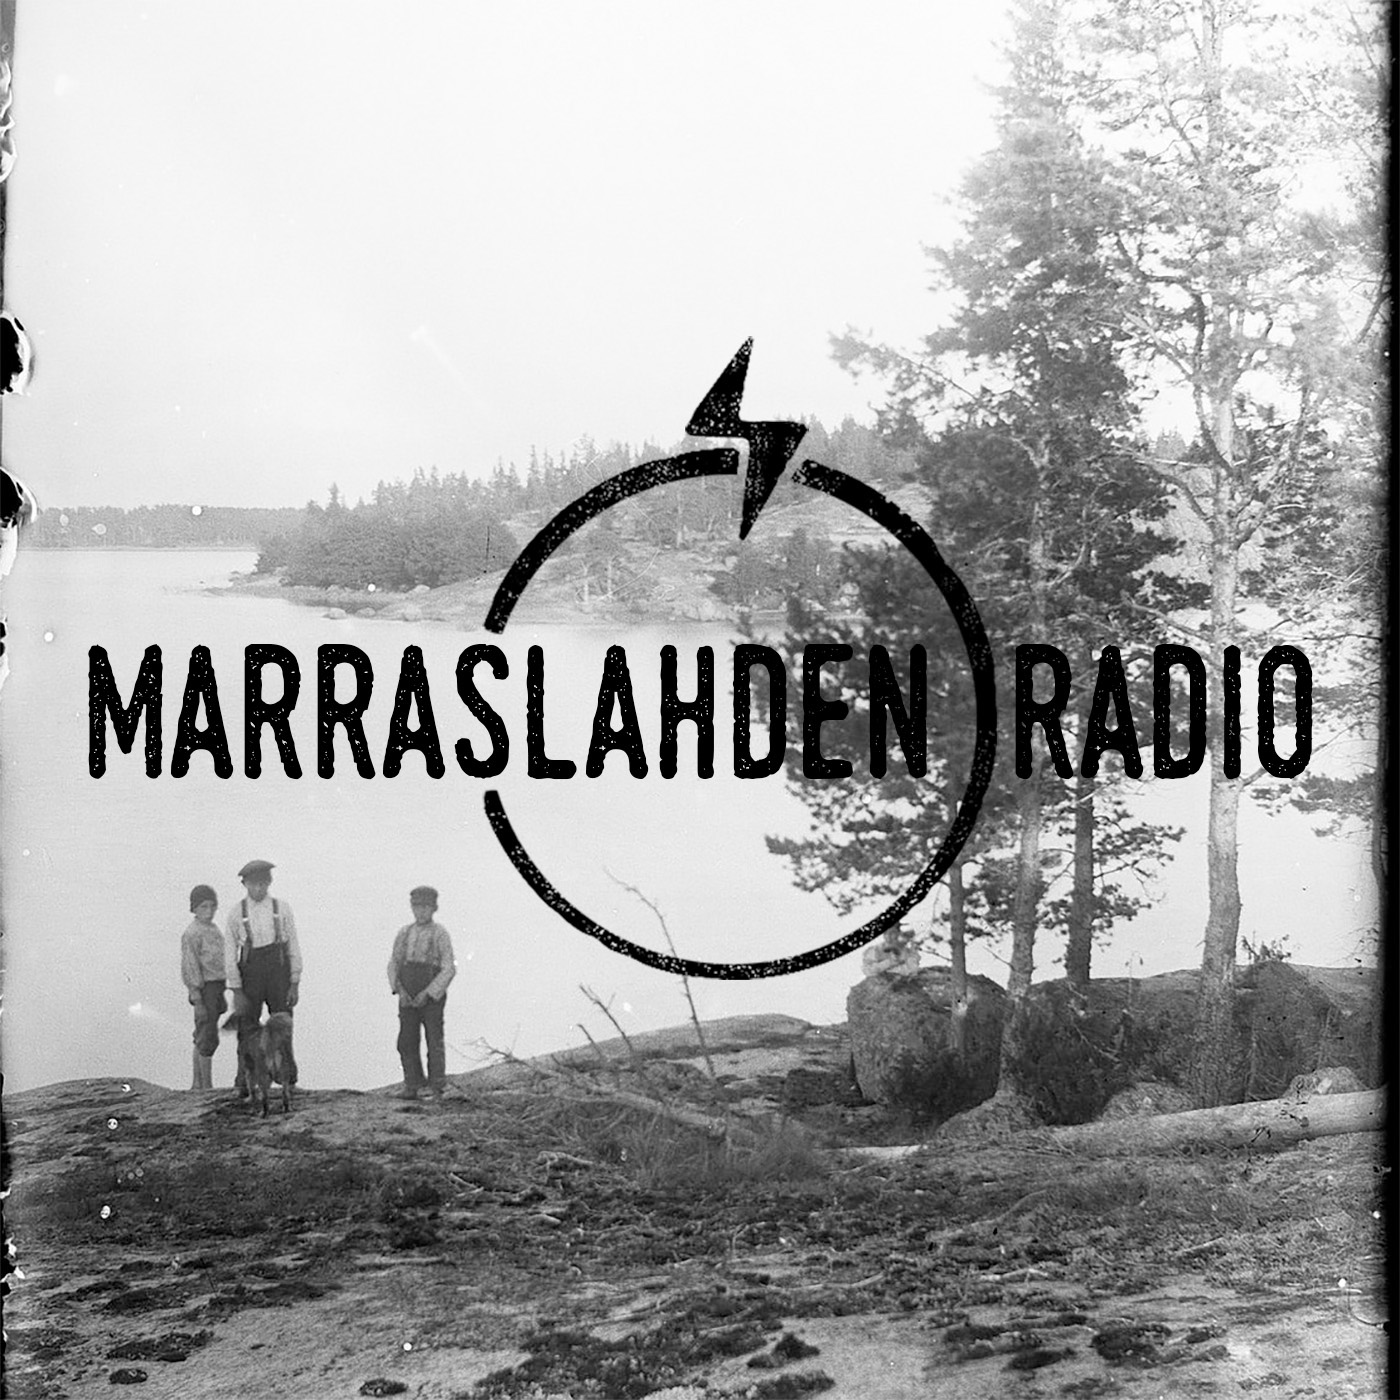 Marraslahden radio